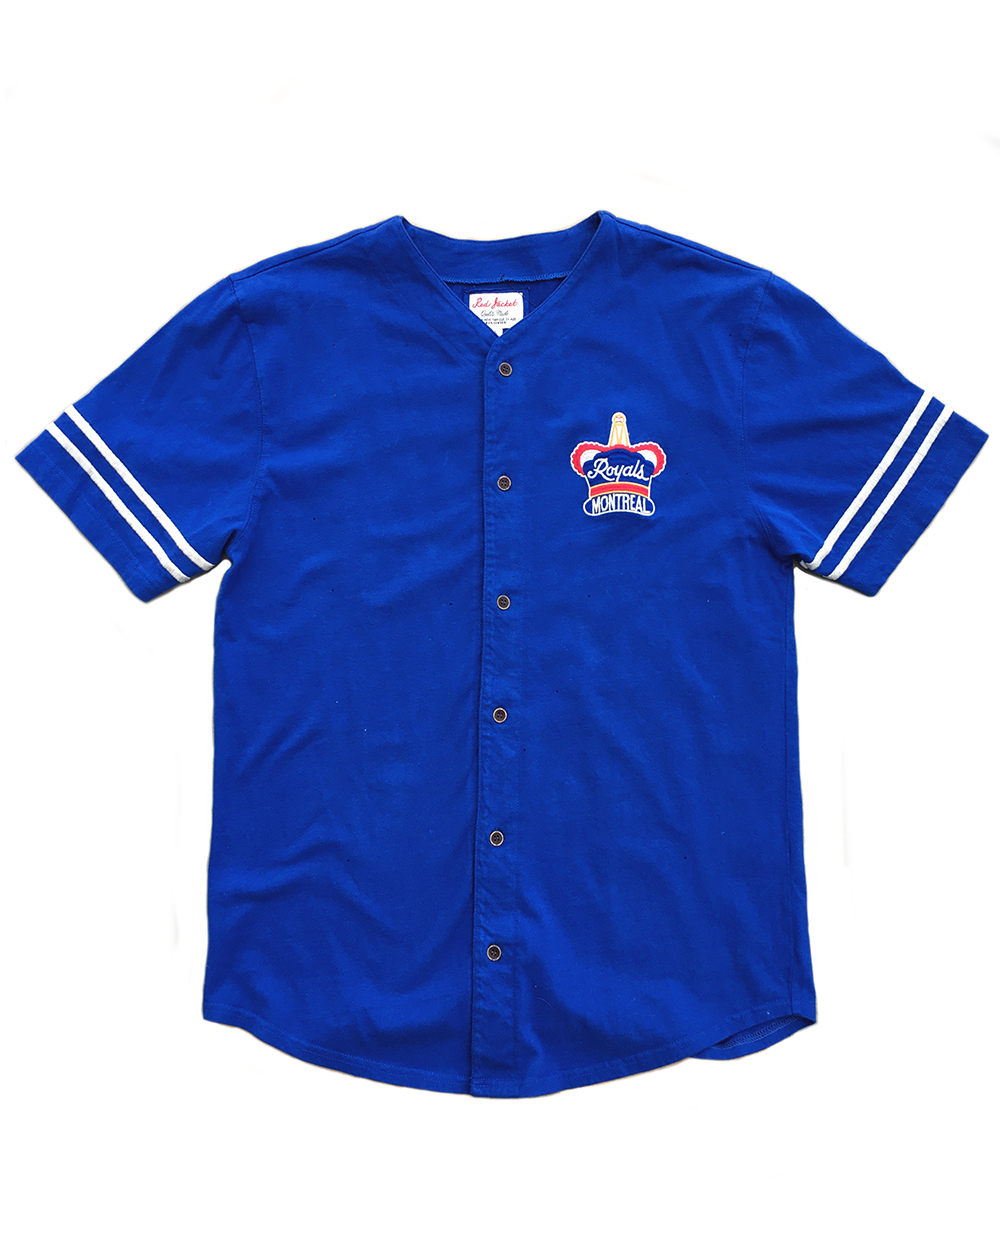 Montreal Royals Archive Jersey